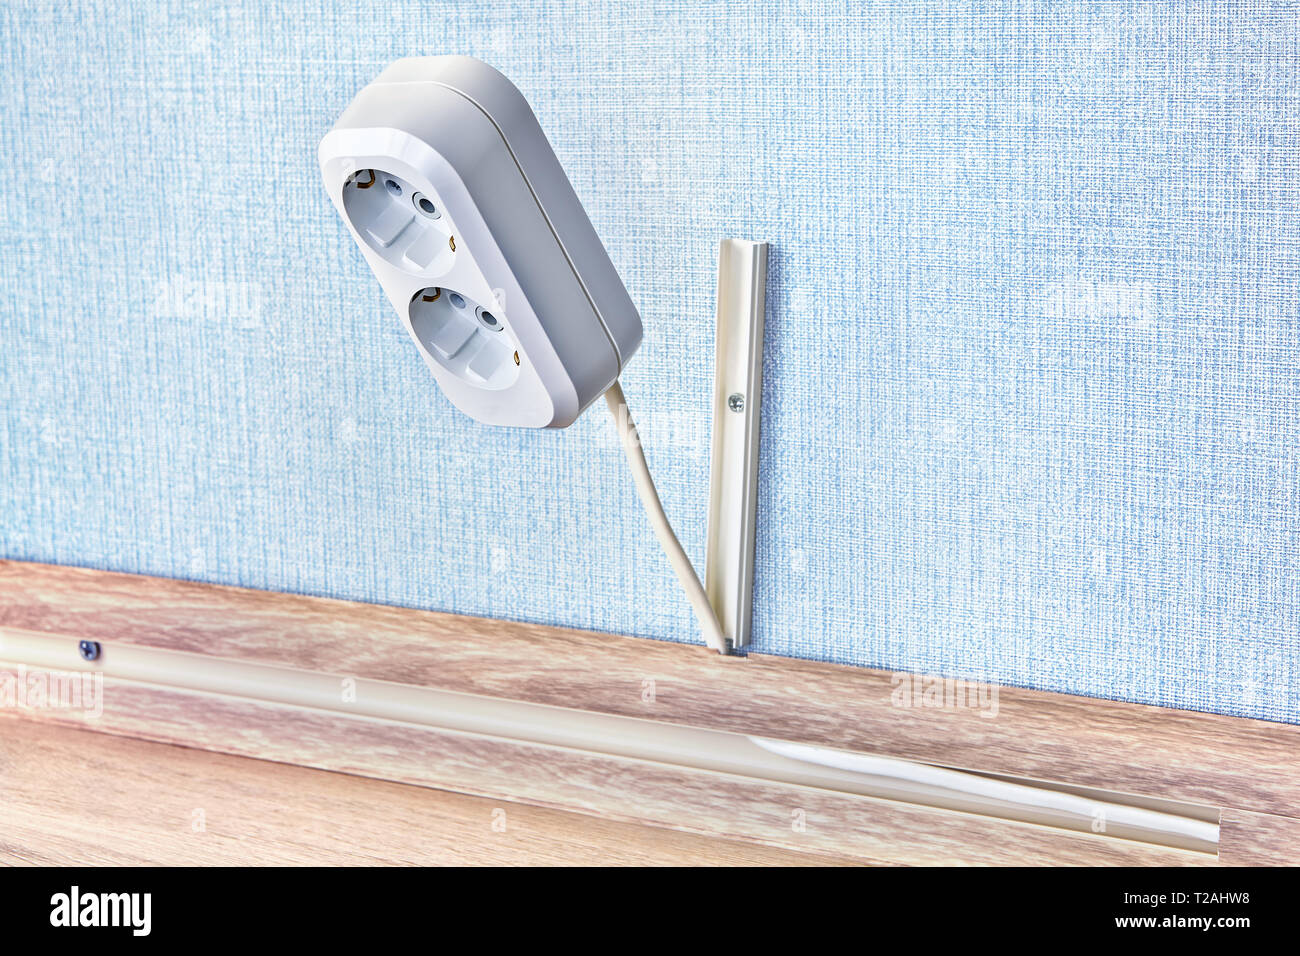 Electrical duplex power plug receptacle in white plastic box. - Stock Image